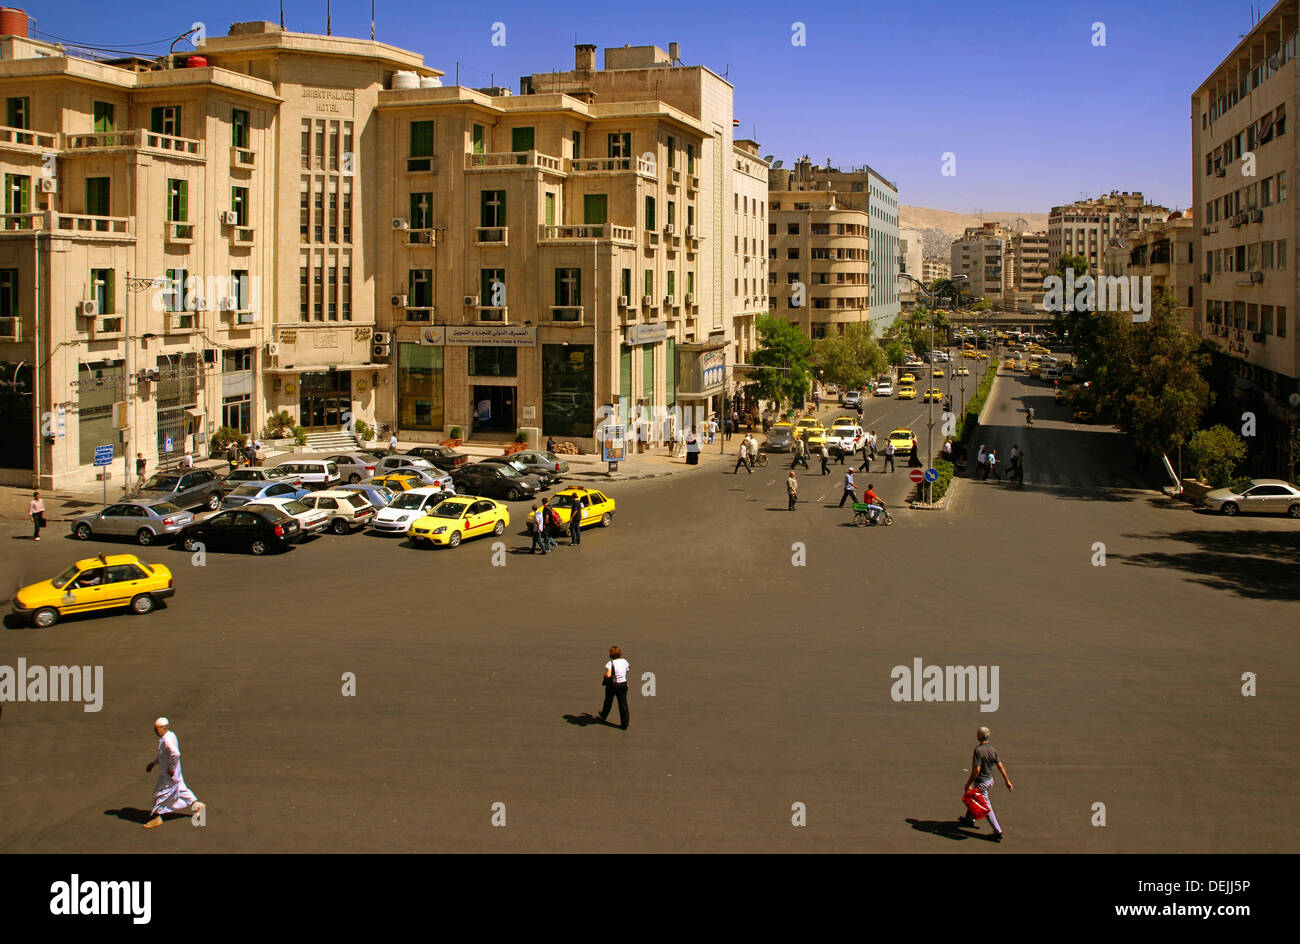 Modern city by the Hejaz Railway station and the famed Orient Palace Hotel, Damascus, Syria - Stock Image